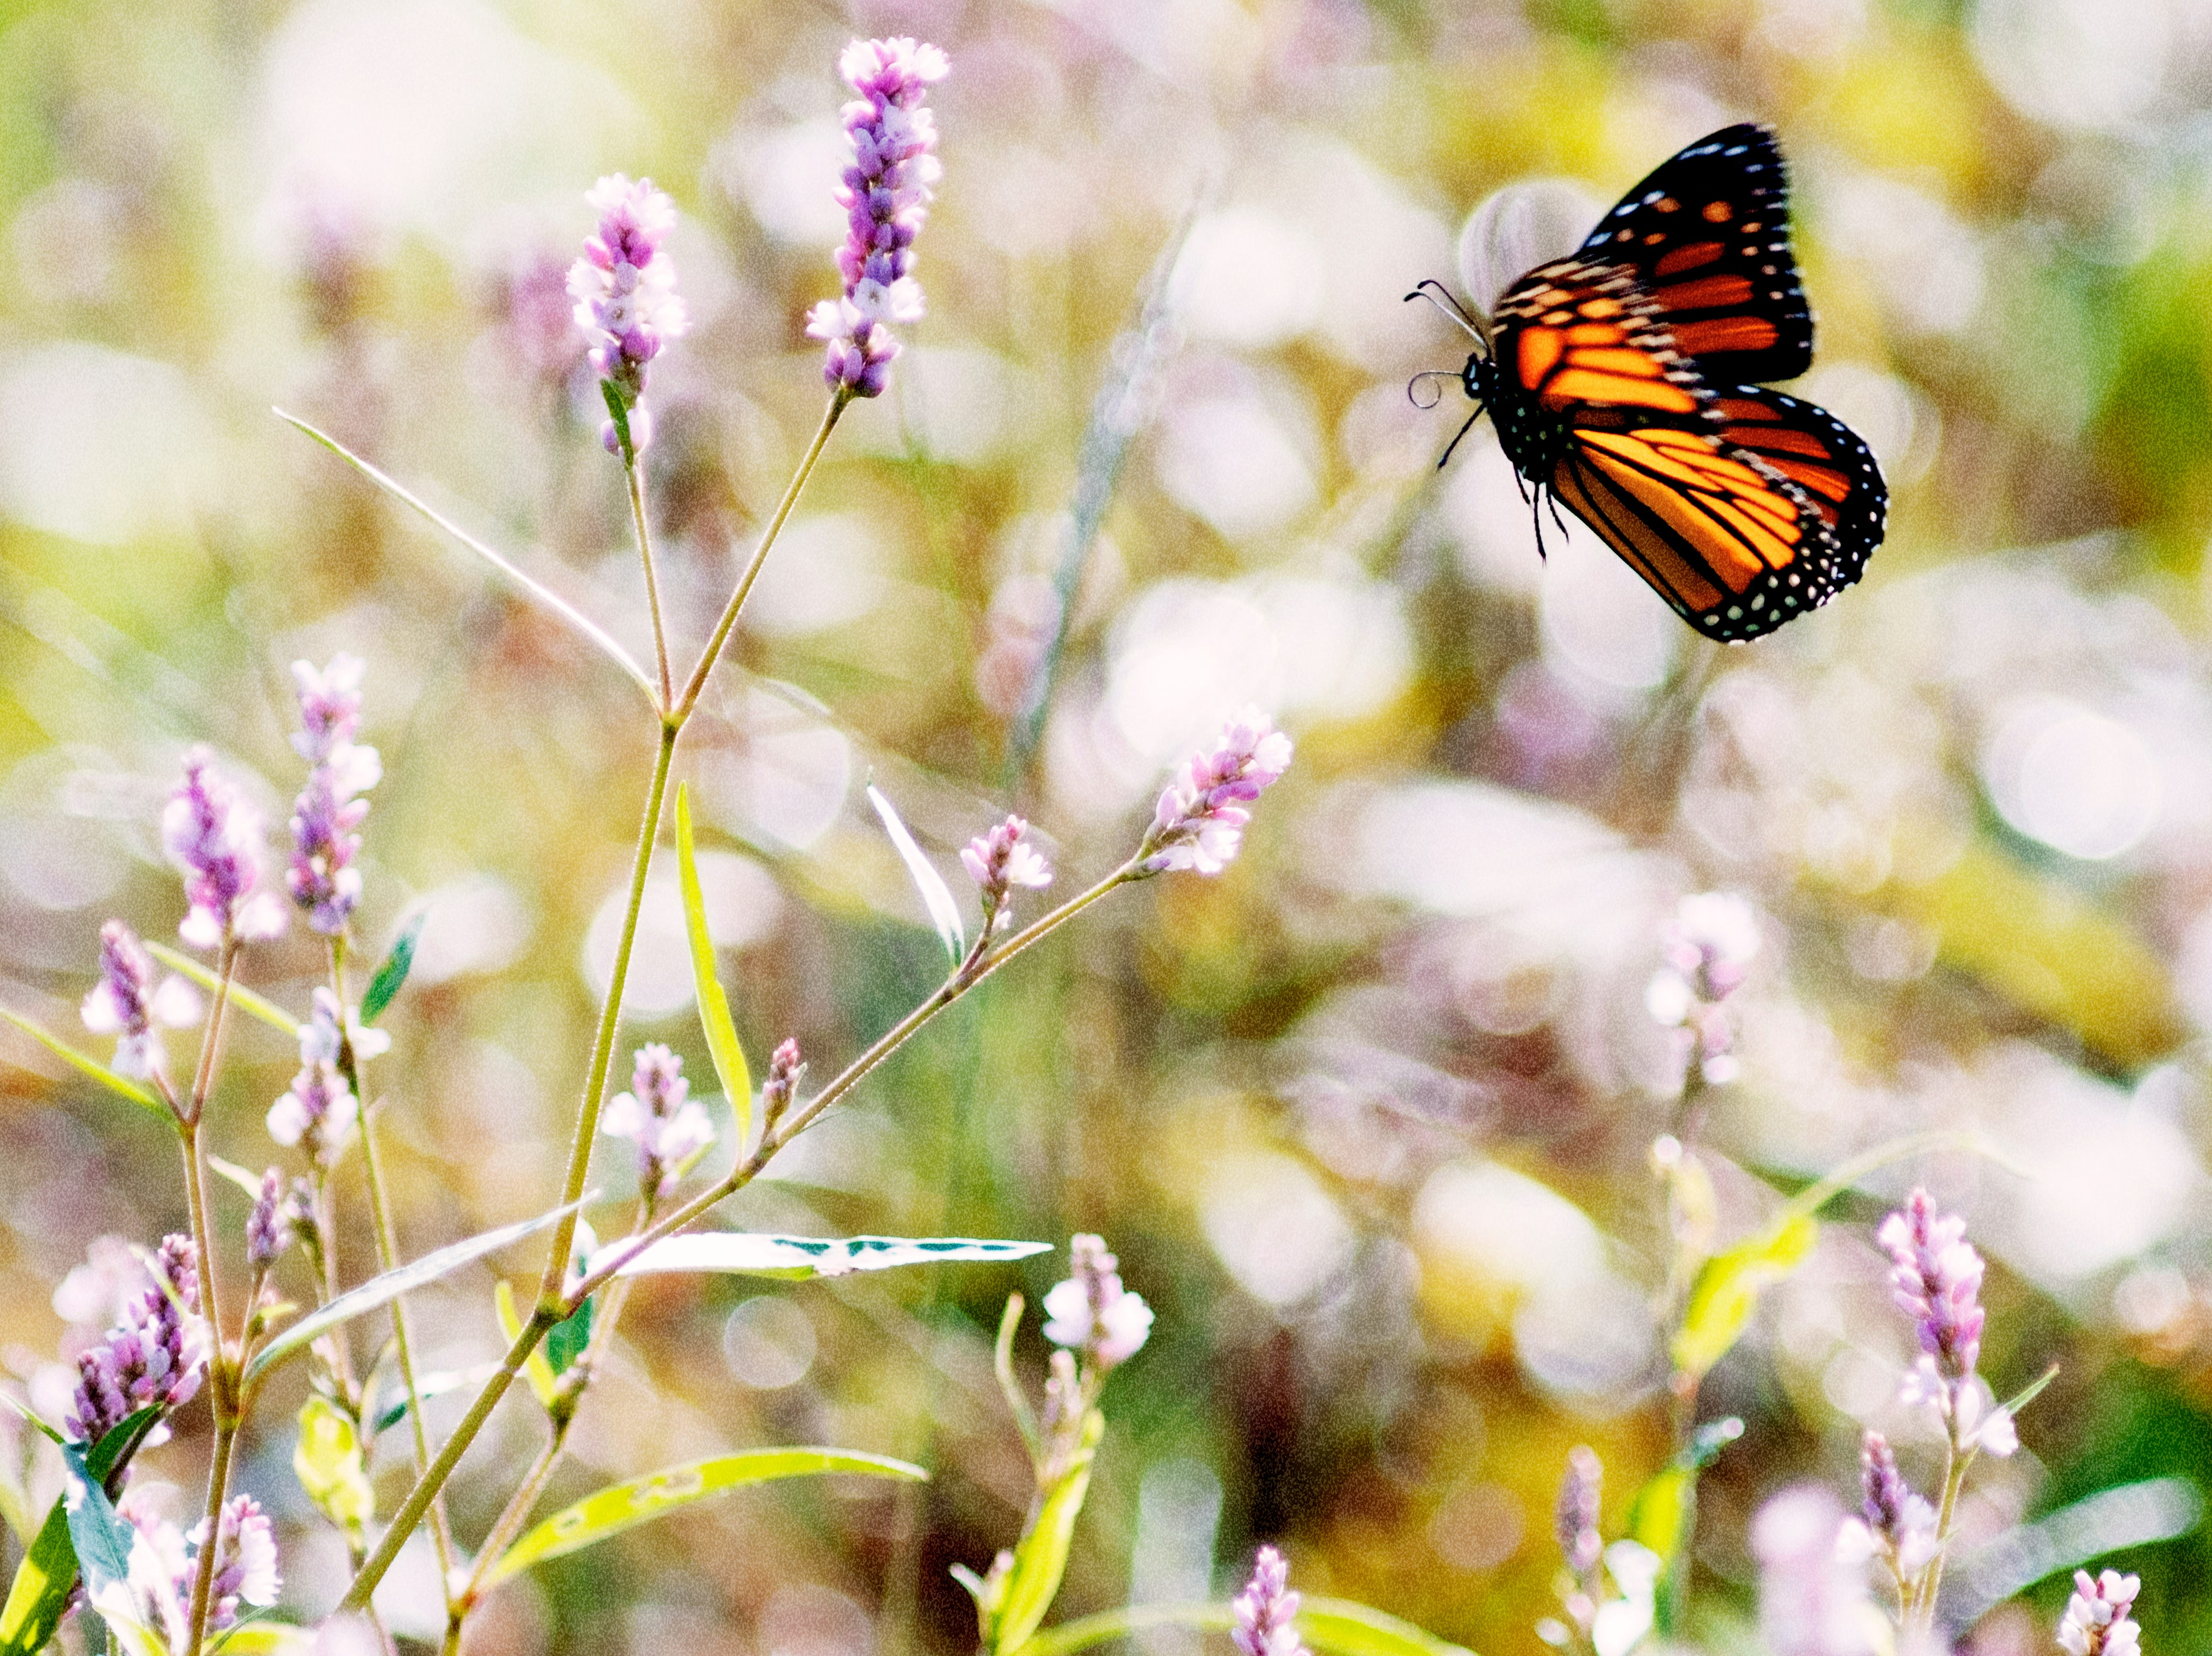 A monarch butterfly lands on a pink-flowering Persicaria plant in a meadow at Cherokee Farms in Knoxville, Tennessee on Sunday, September 30, 2018. Plants of the genus Persicaria are commonly known as knotweed or smartweed. These plants, which are native to Europe and West Asia, typically bloom during the summer into autumn and attracts insects like butterflies and bees.